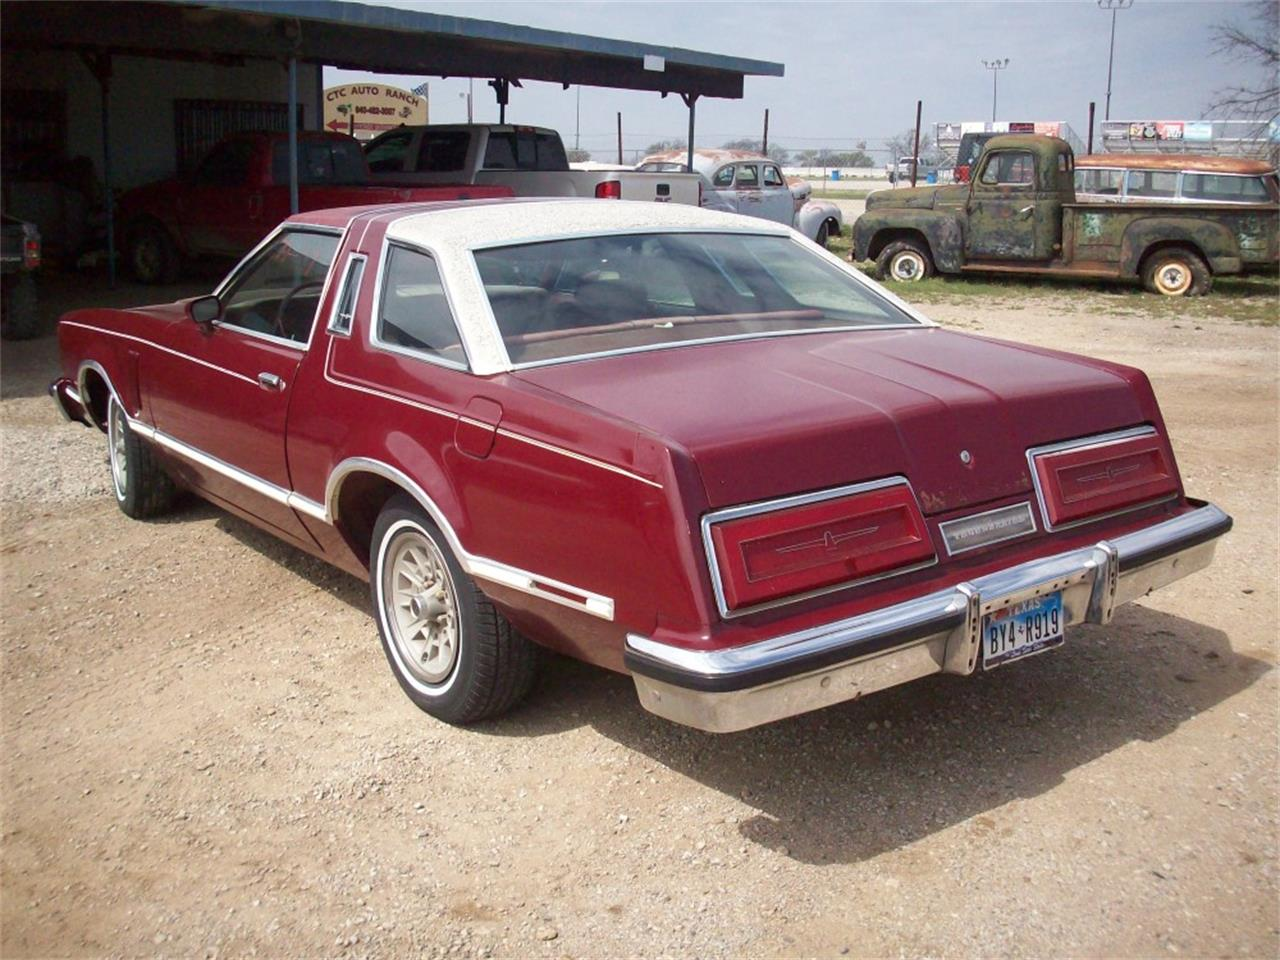 Large Picture of 1979 Ford Thunderbird - $3,495.00 Offered by CTC's Auto Ranch Inc - KQD9